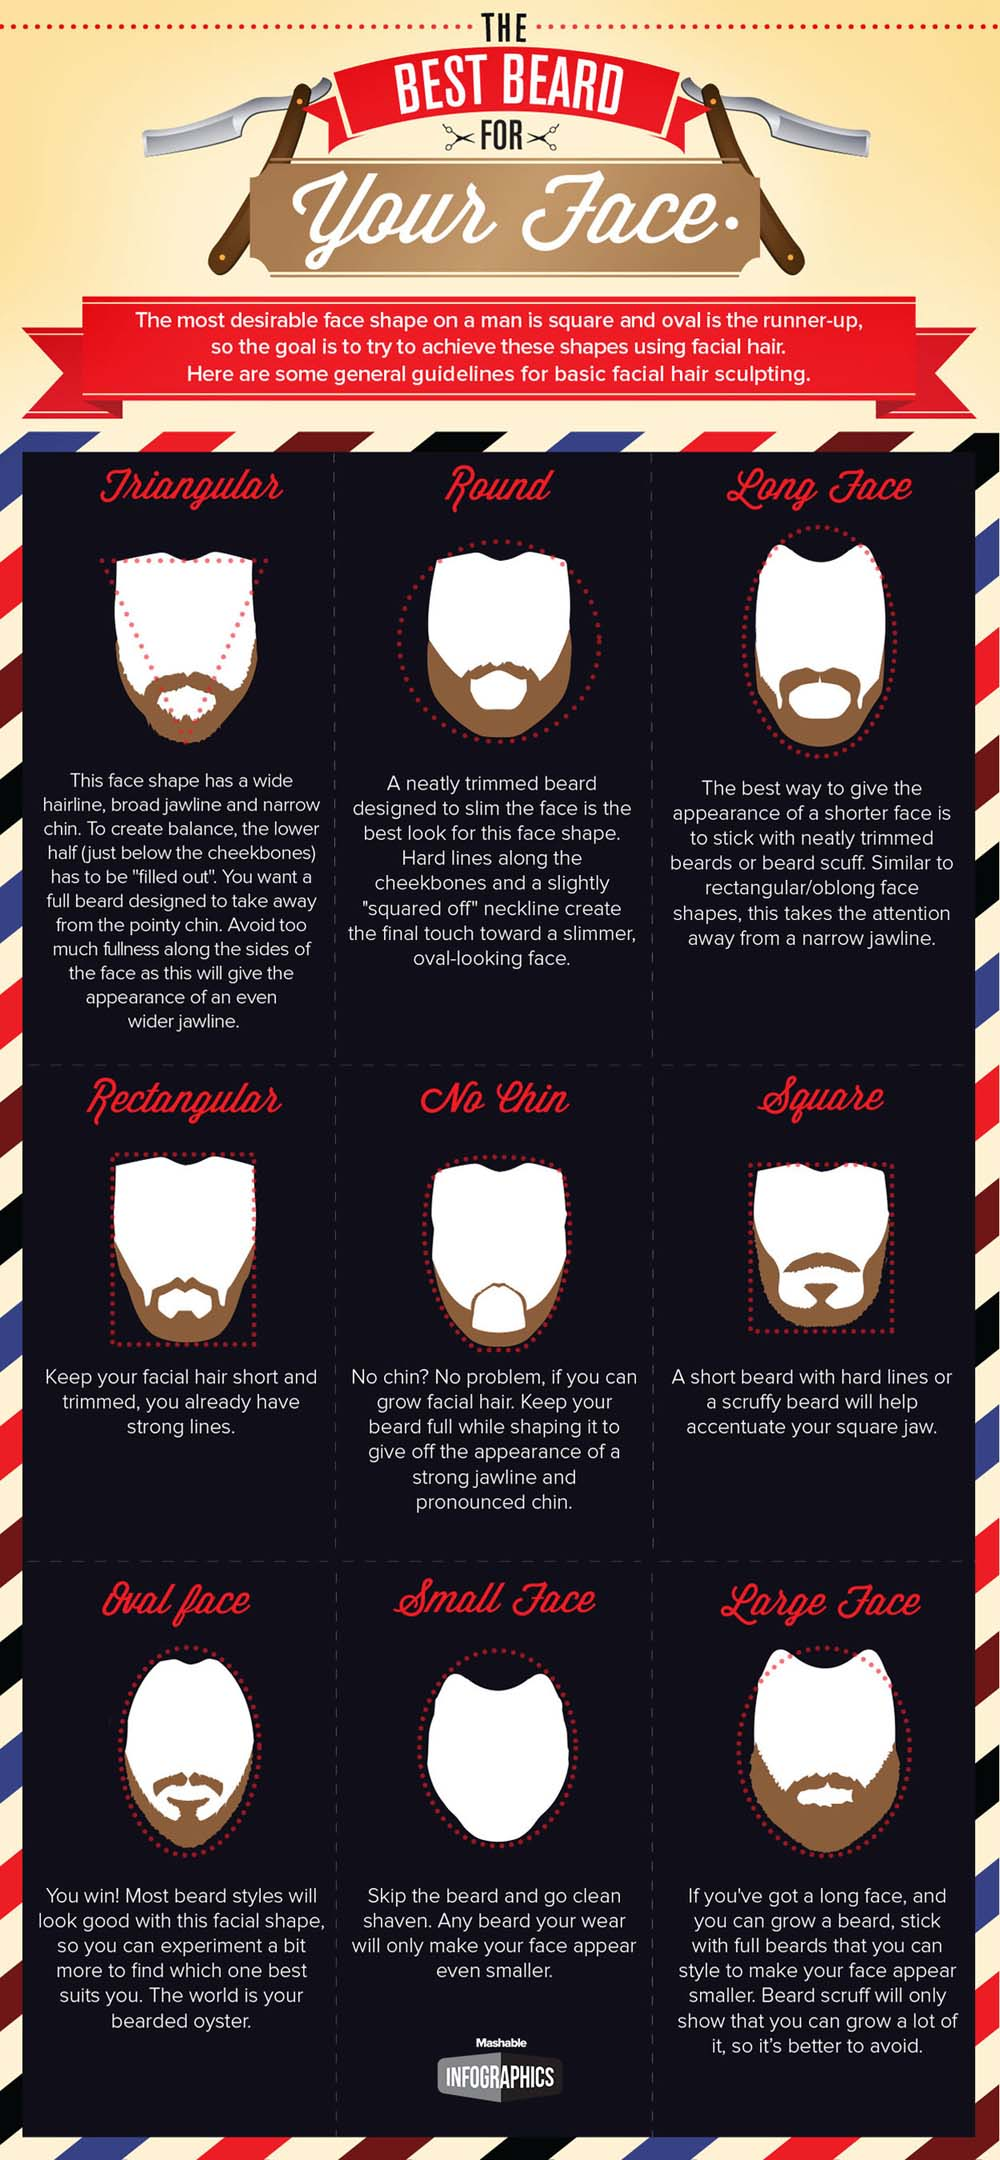 Best beard for your face